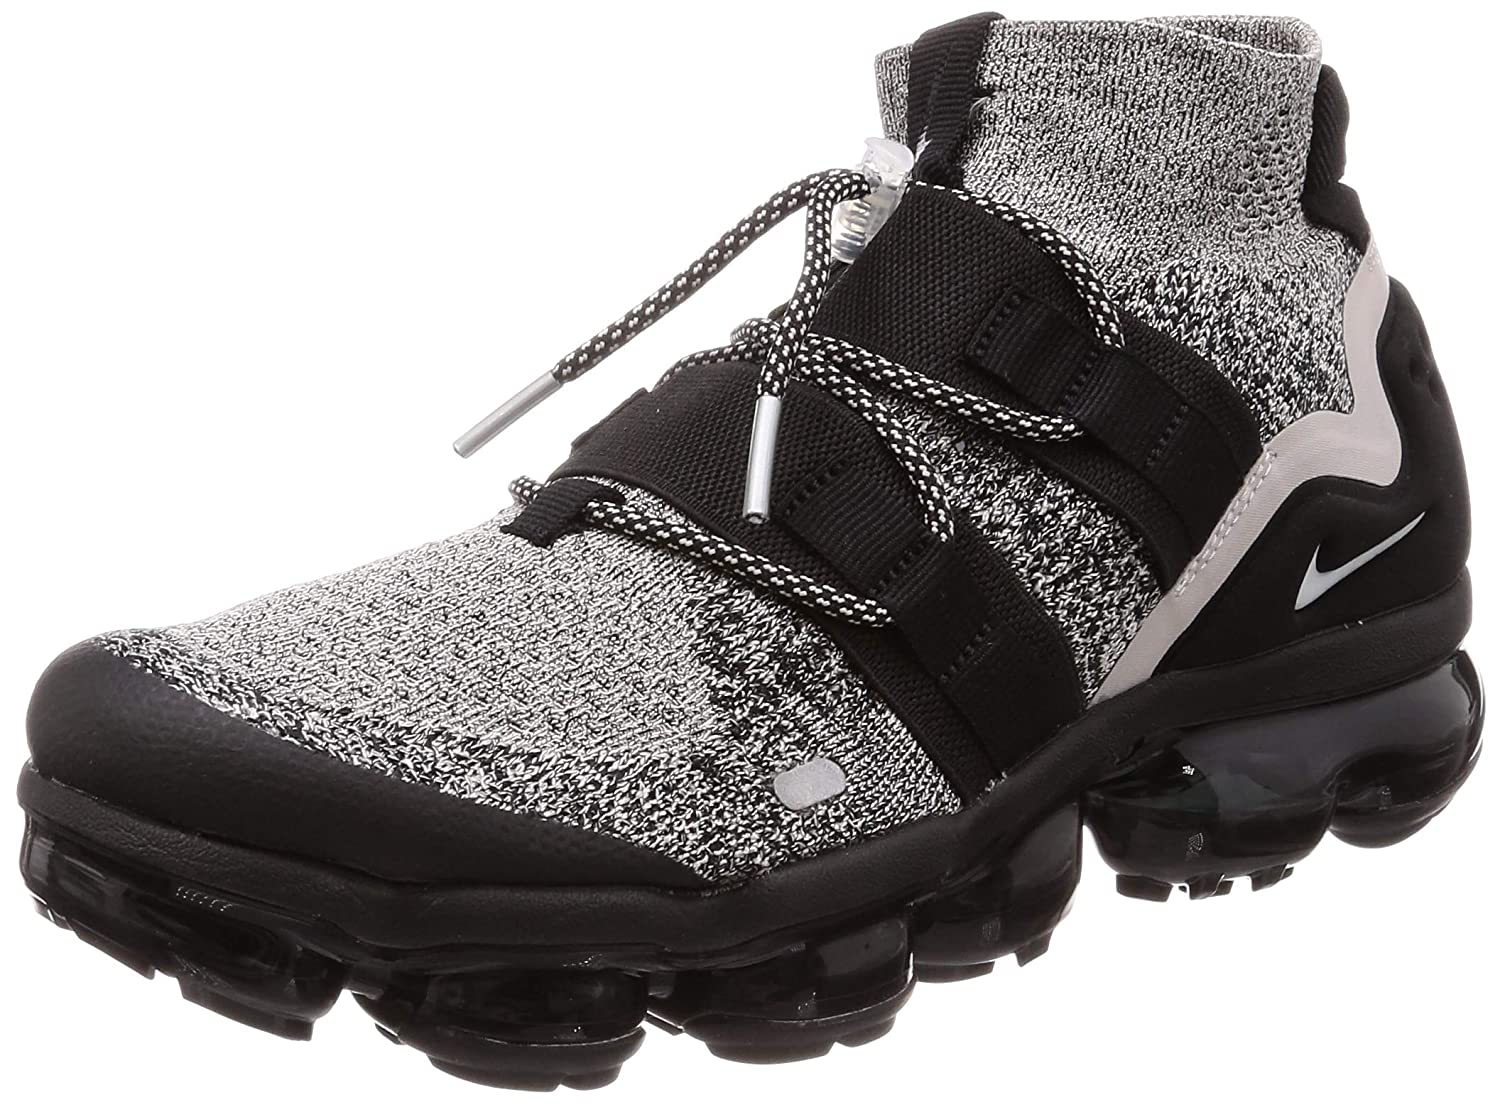 uk availability 494b1 c1f1a NIKE Air Vapormax Fk Utility Mens